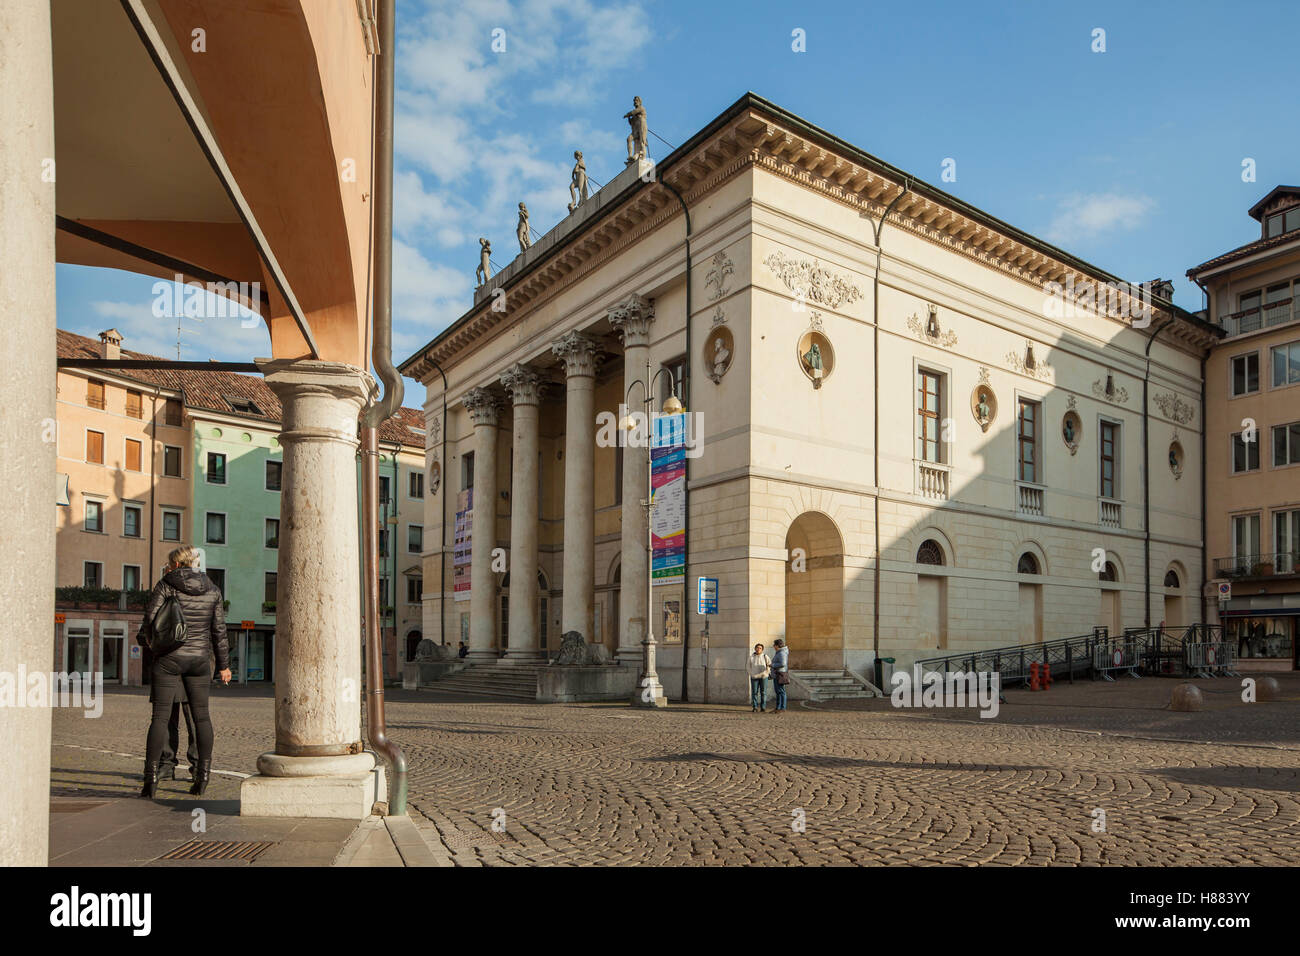 Communal Theatre in Belluno old town, Veneto, northern Italy. - Stock Image